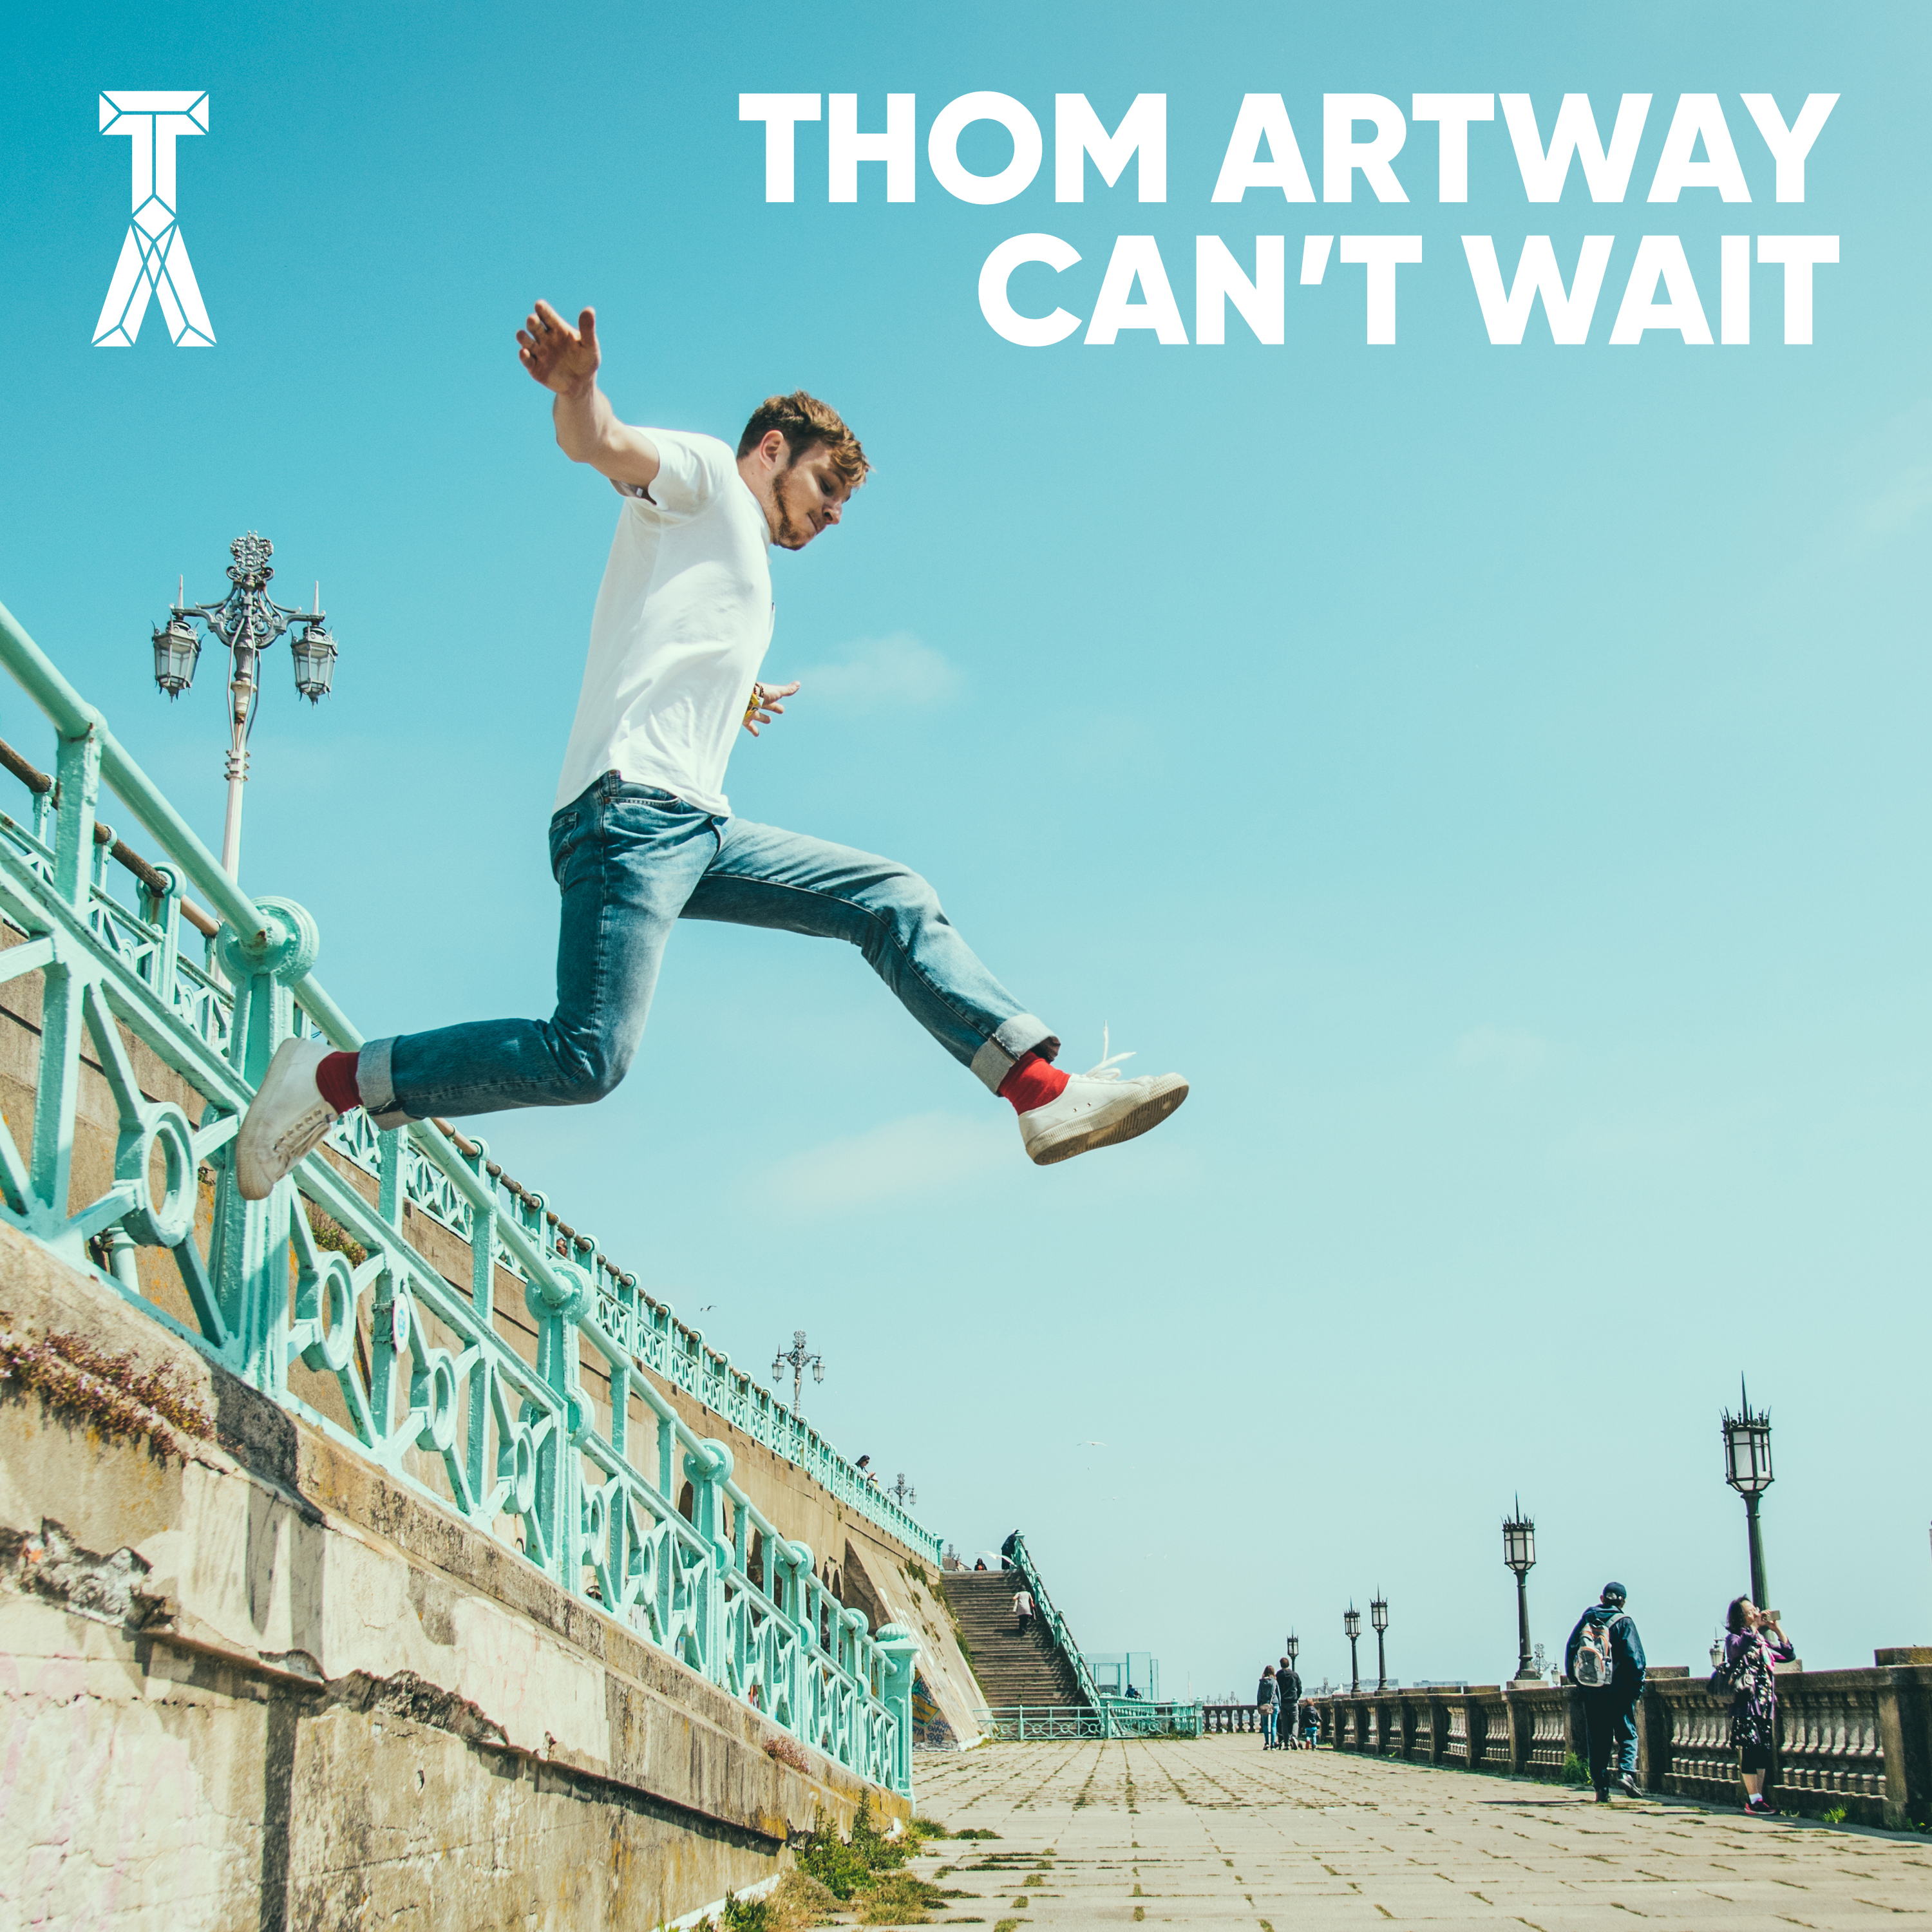 Thom artway cant wait cover (1)